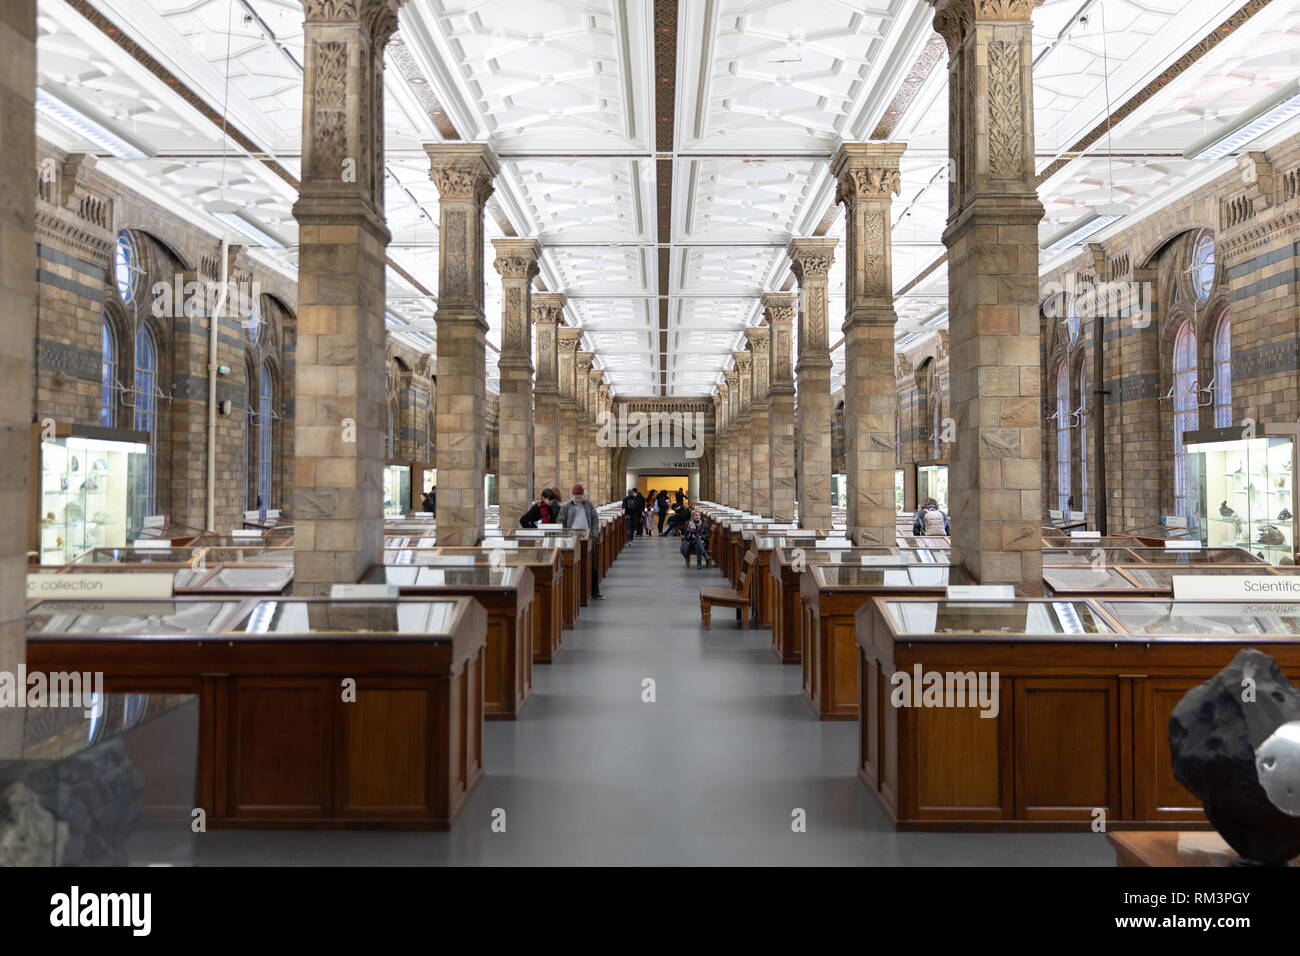 The minerals room at The Natural History Museum, London, Uk - Stock Image